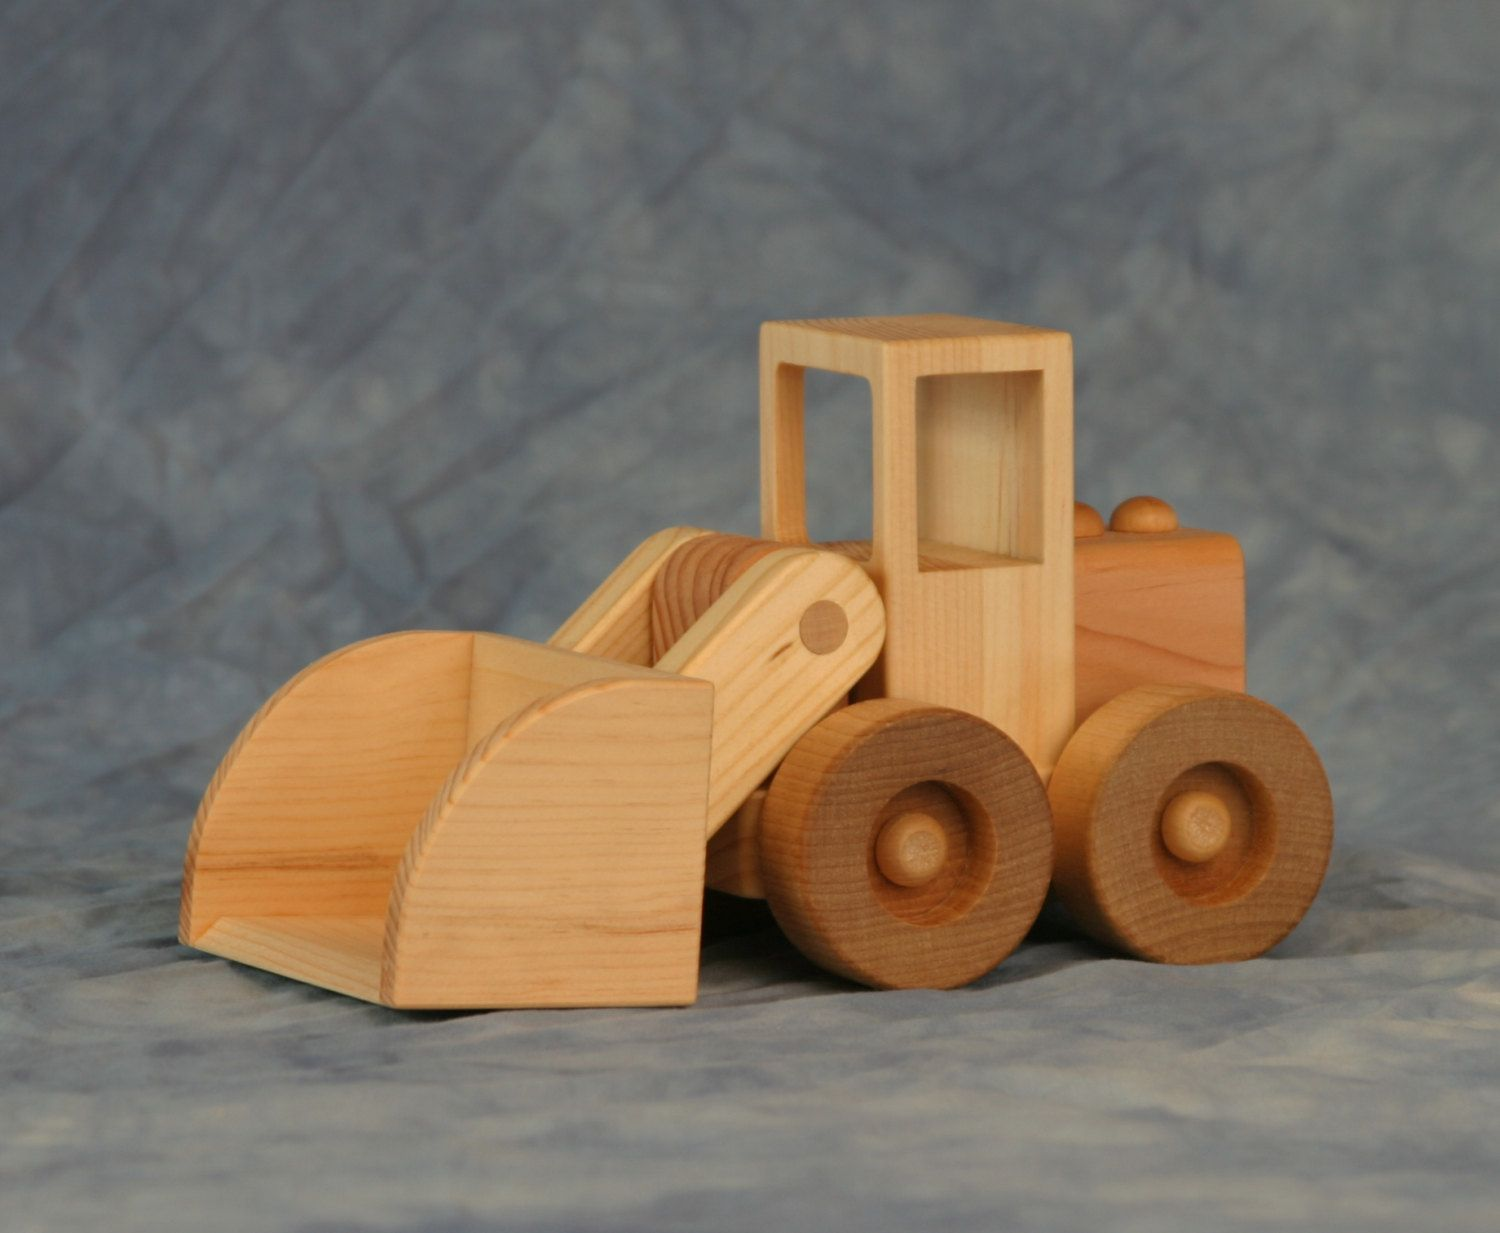 wooden toy payloaderjolilimited on etsy | wood toys